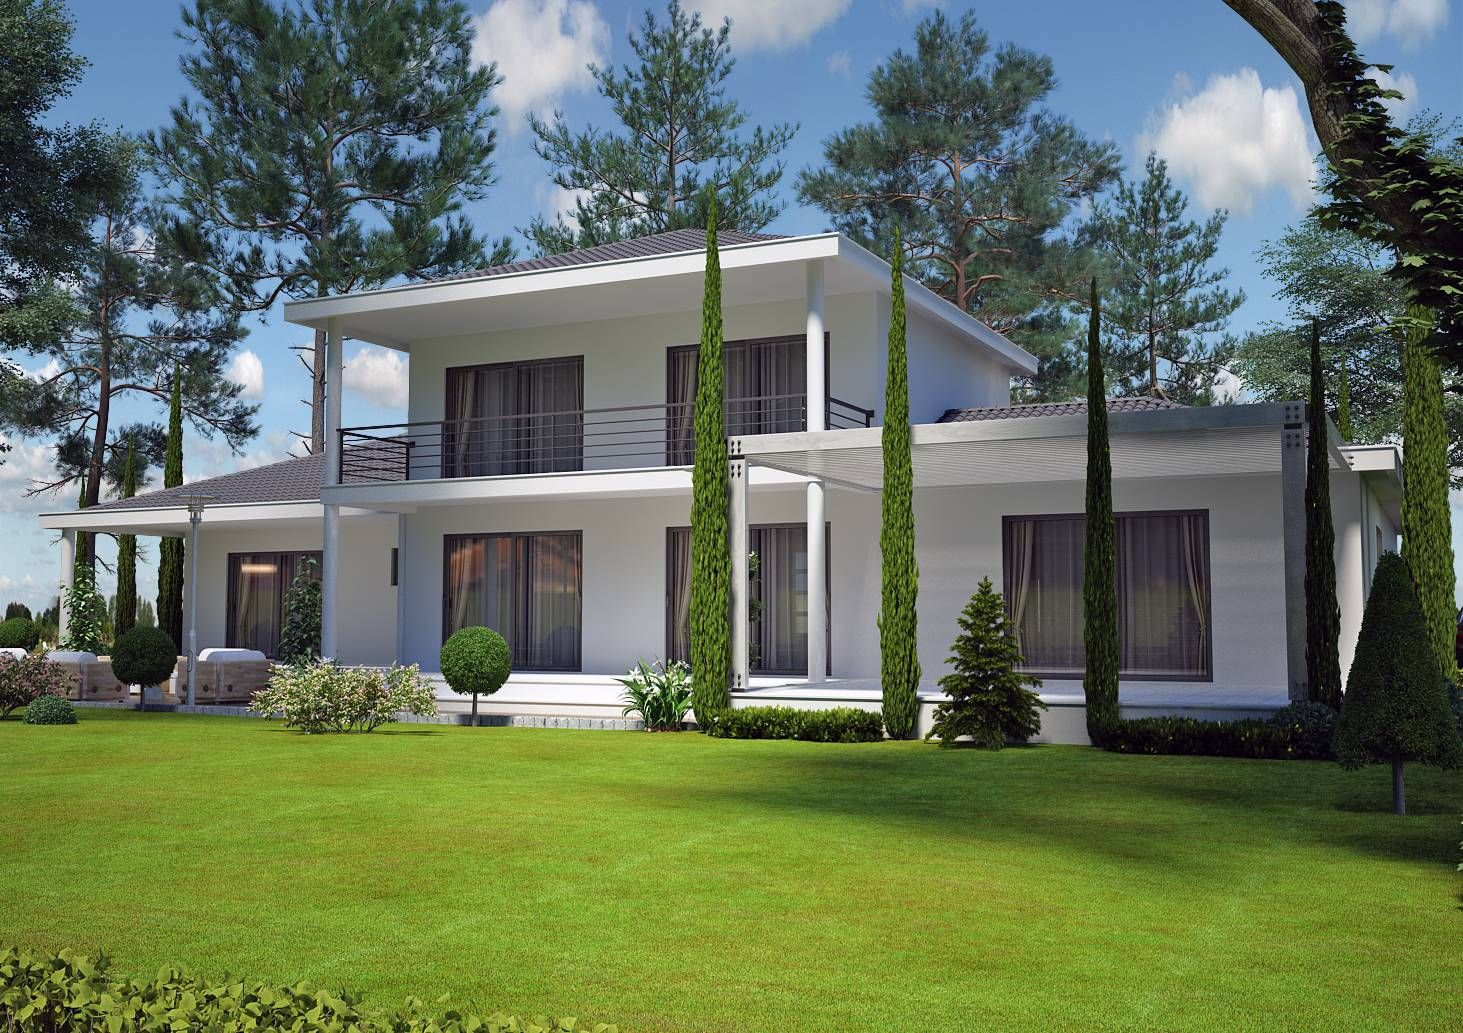 Villa contemporaine 150 m2 etage mod le pinede salon de provence 13300 bdr azur logement for Belle interieur maison